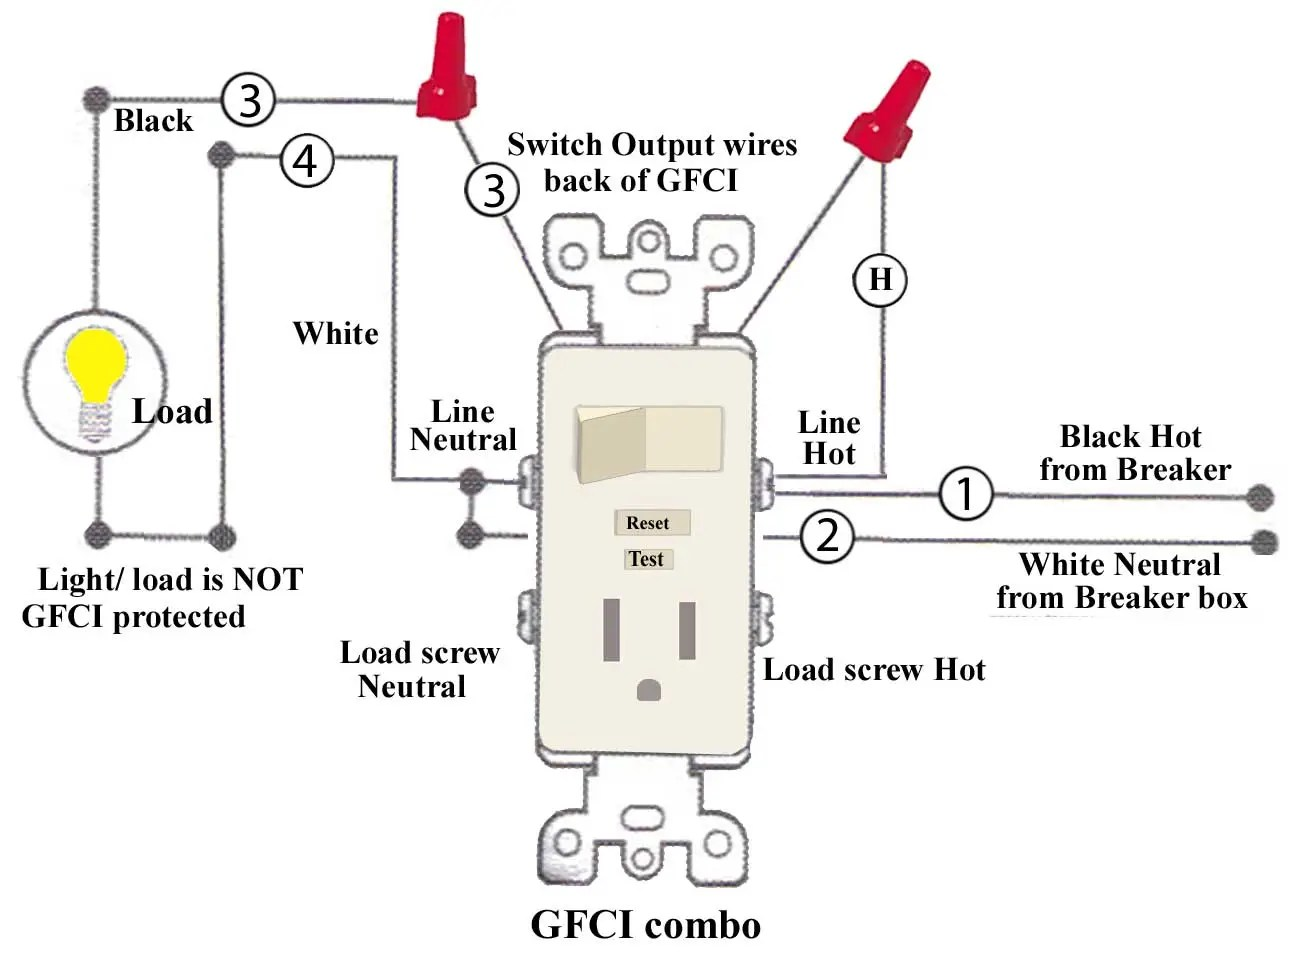 hight resolution of how to install and troubleshoot gfci leviton gfci outlet wiring diagram leviton gfci wiring